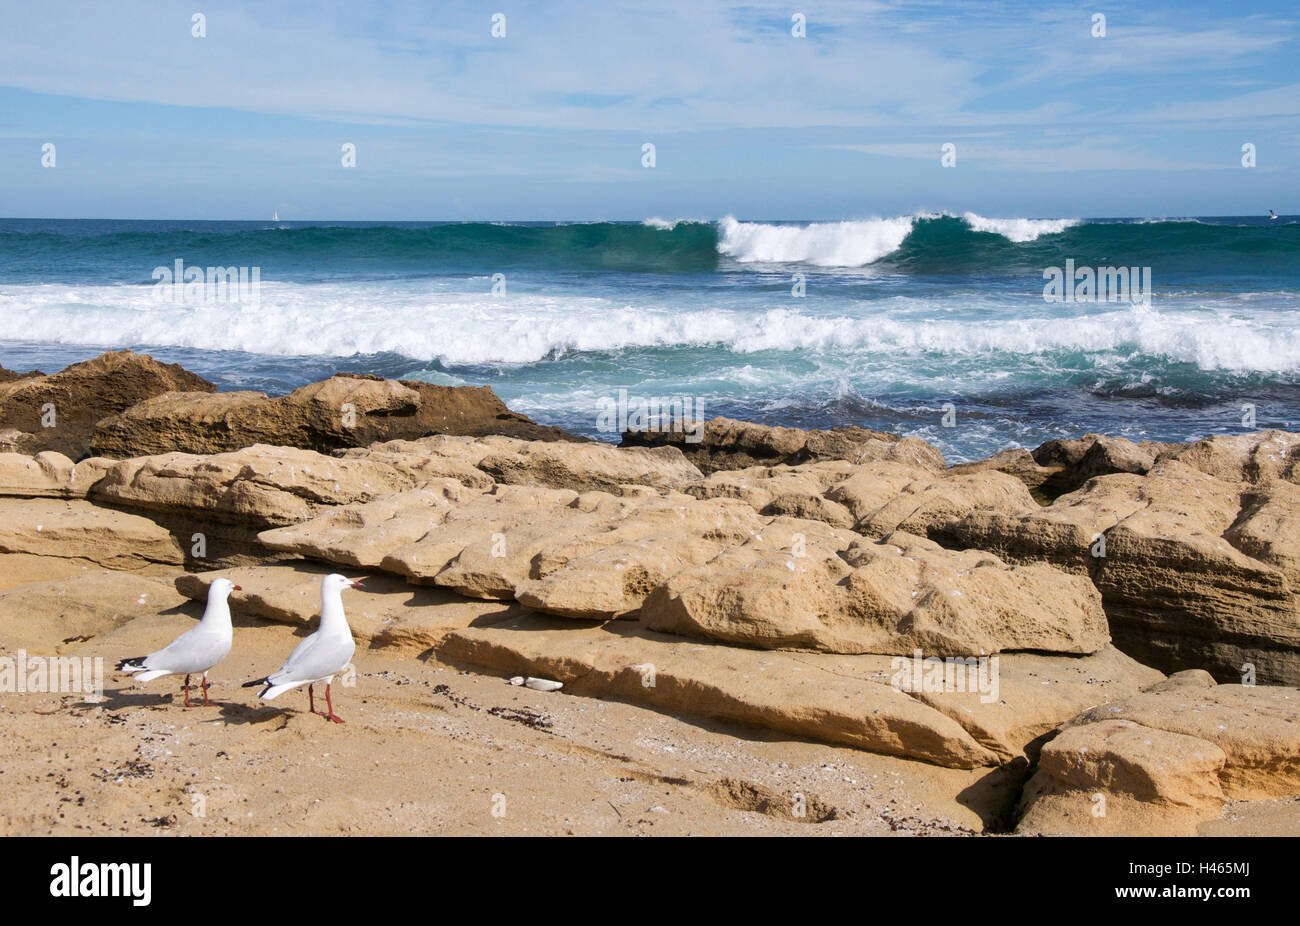 Two sea gulls on the rough limestone coastline at Penguin Island with Indian Ocean waves rolling in Rockingham,Western Stock Photo